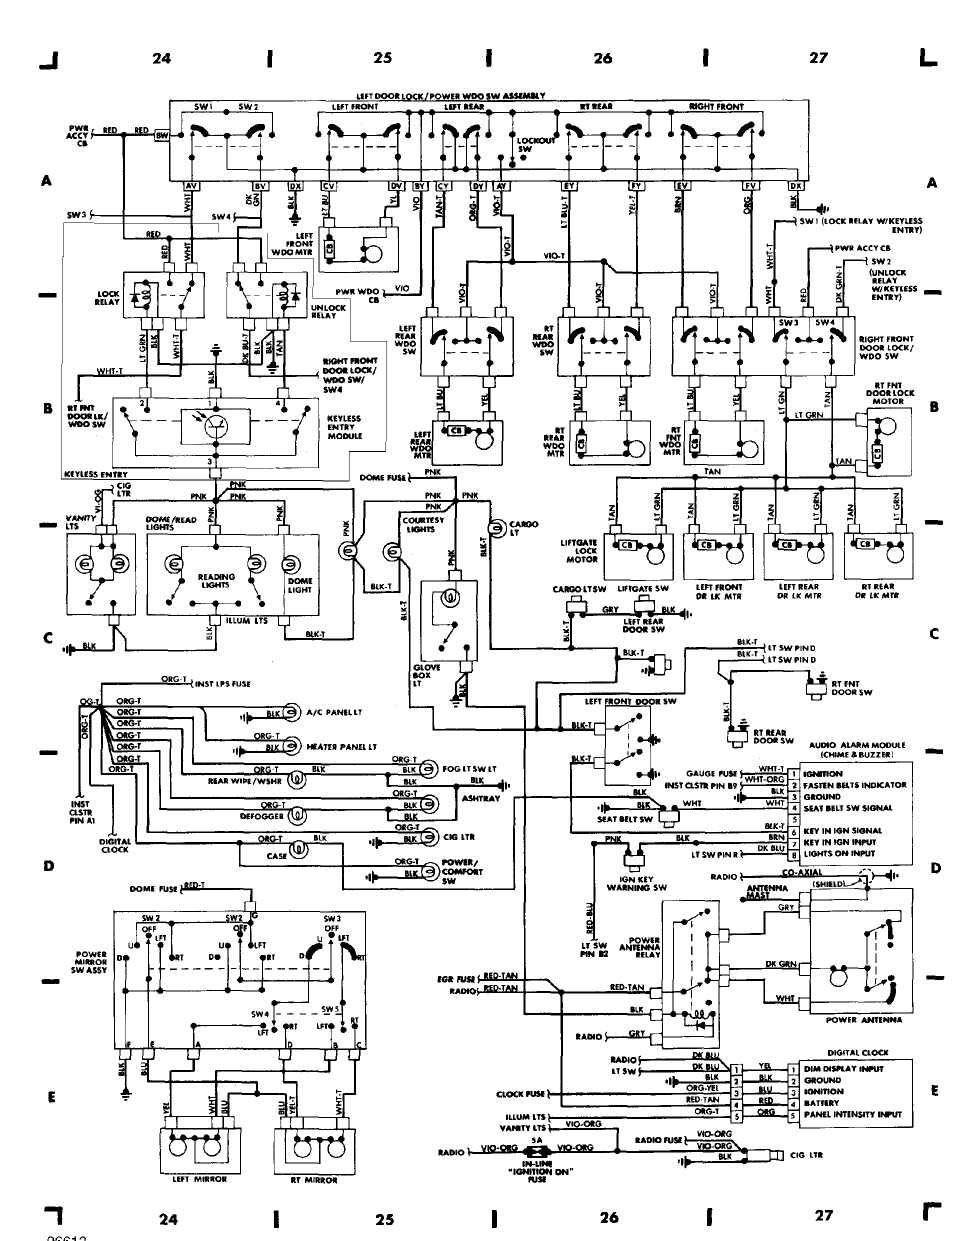 wiring_diagrams_html_61f5e0ad wiring diagrams 1984 1991 jeep cherokee (xj) jeep 95 jeep wrangler wiring harness diagram at creativeand.co